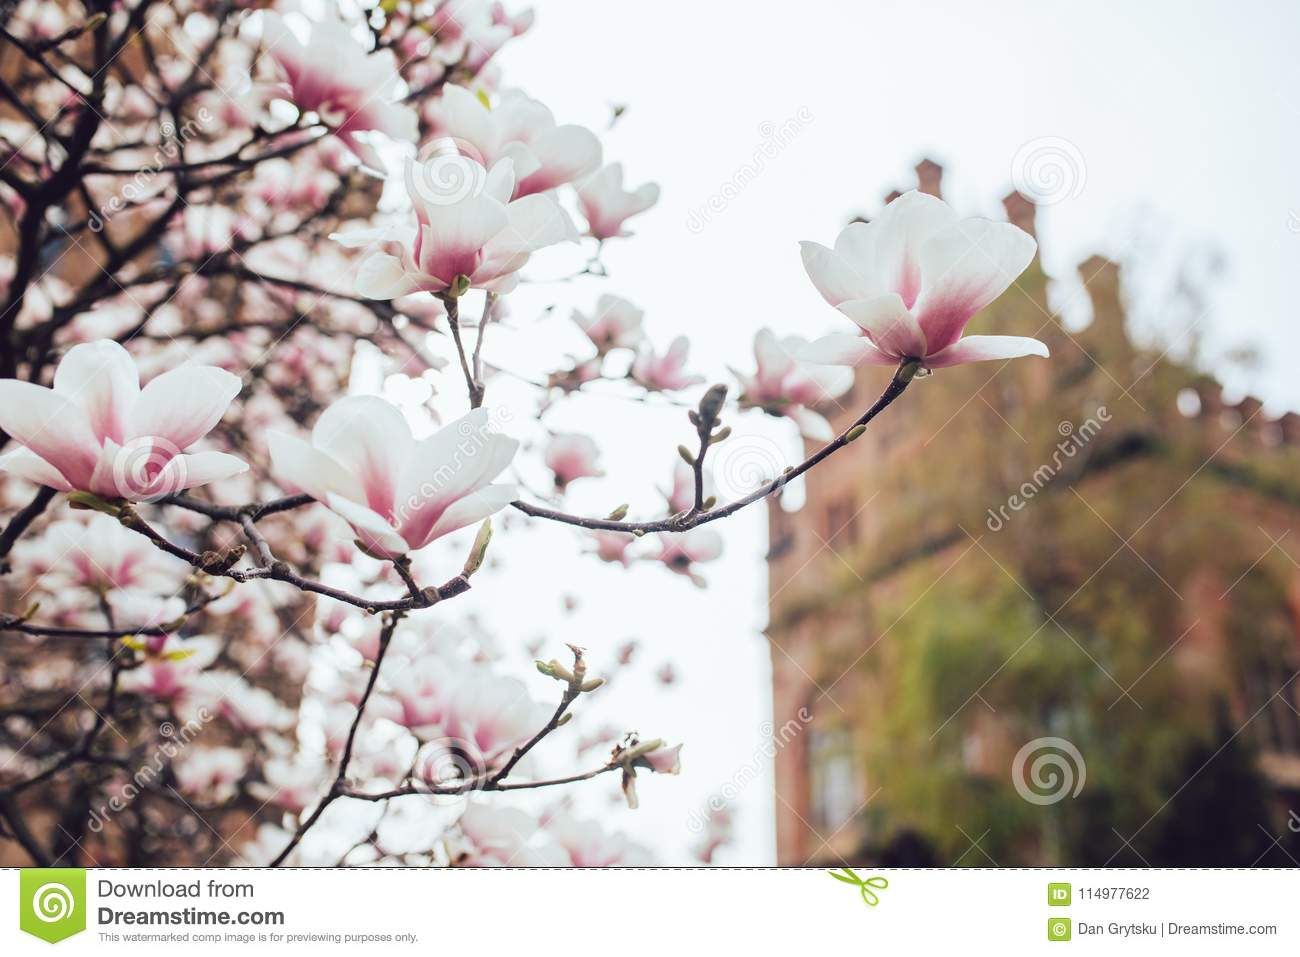 Magnolia Tree Blossom Outdoors Spring Time Stock Photo Image Of Magnoliatree Bloom 114977622